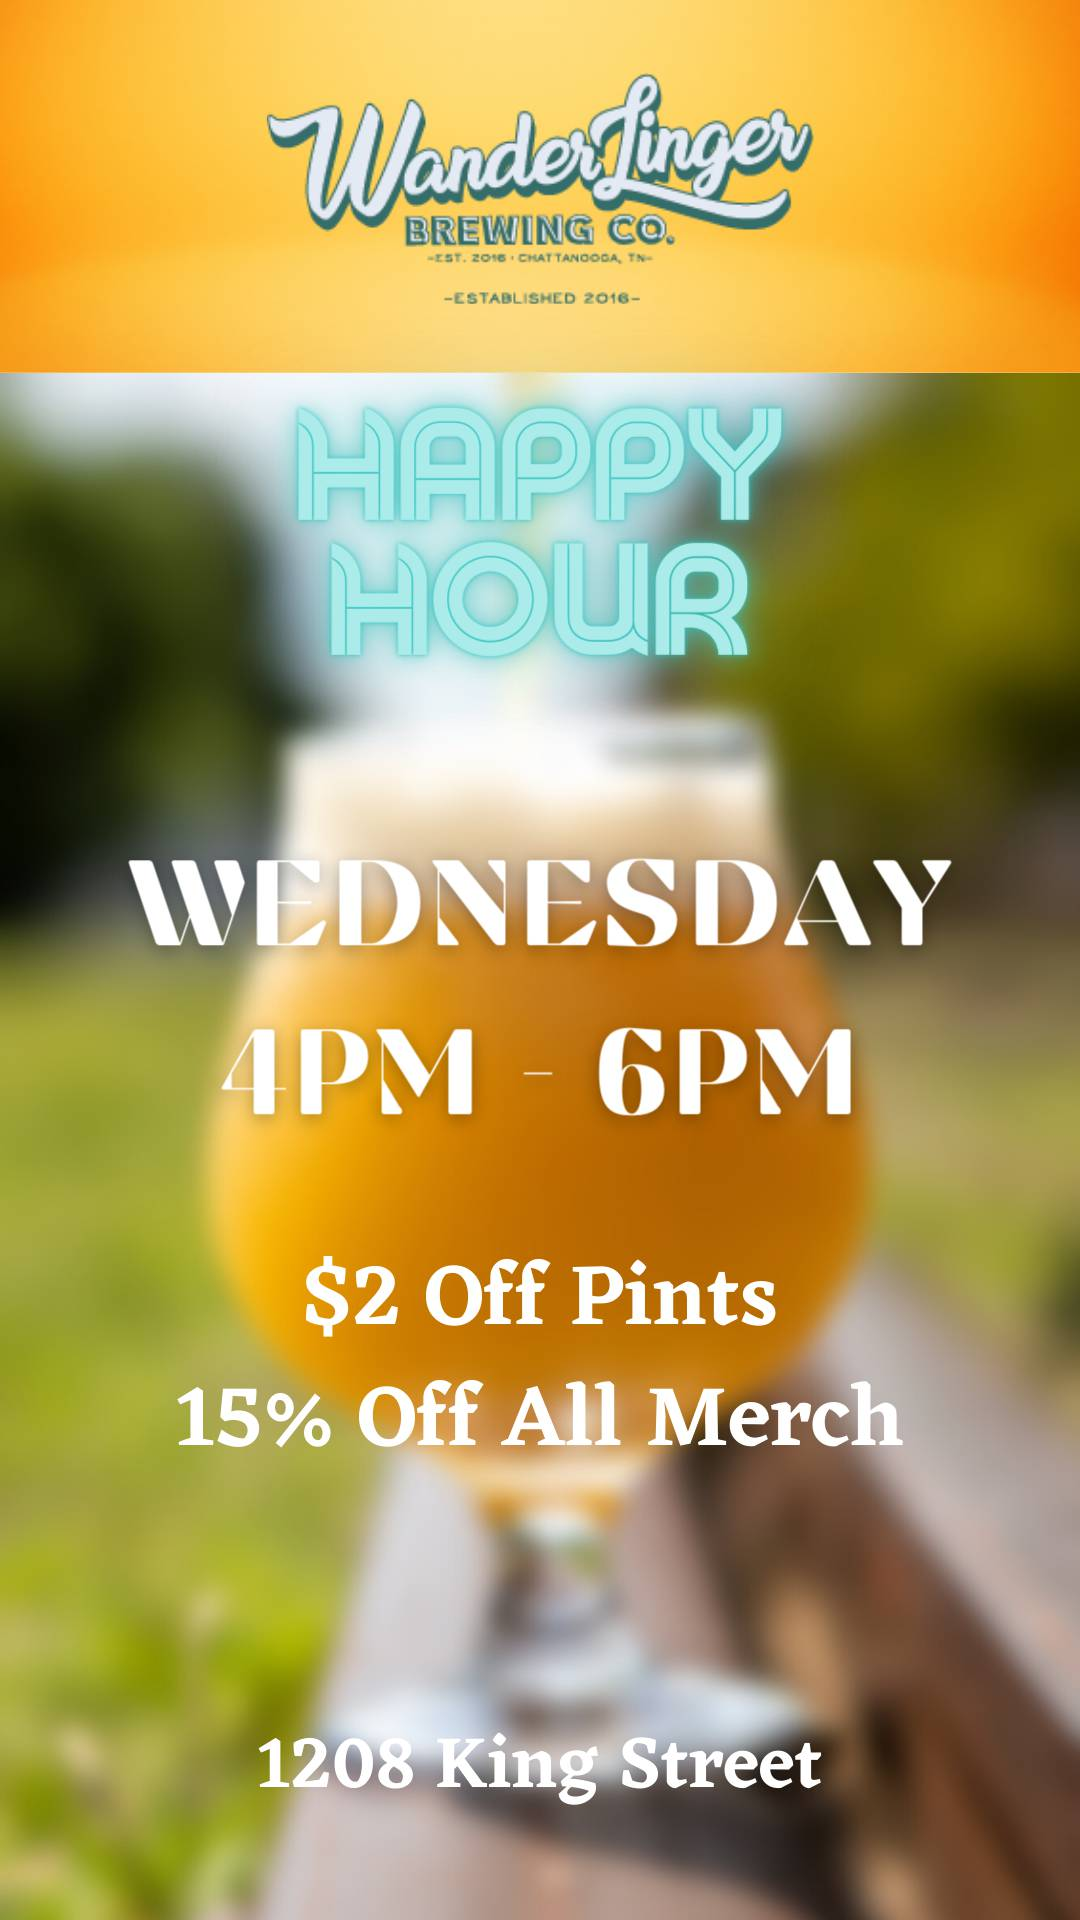 Wednesday Happy Hour! $2 Off Pints/15% Off All Merch